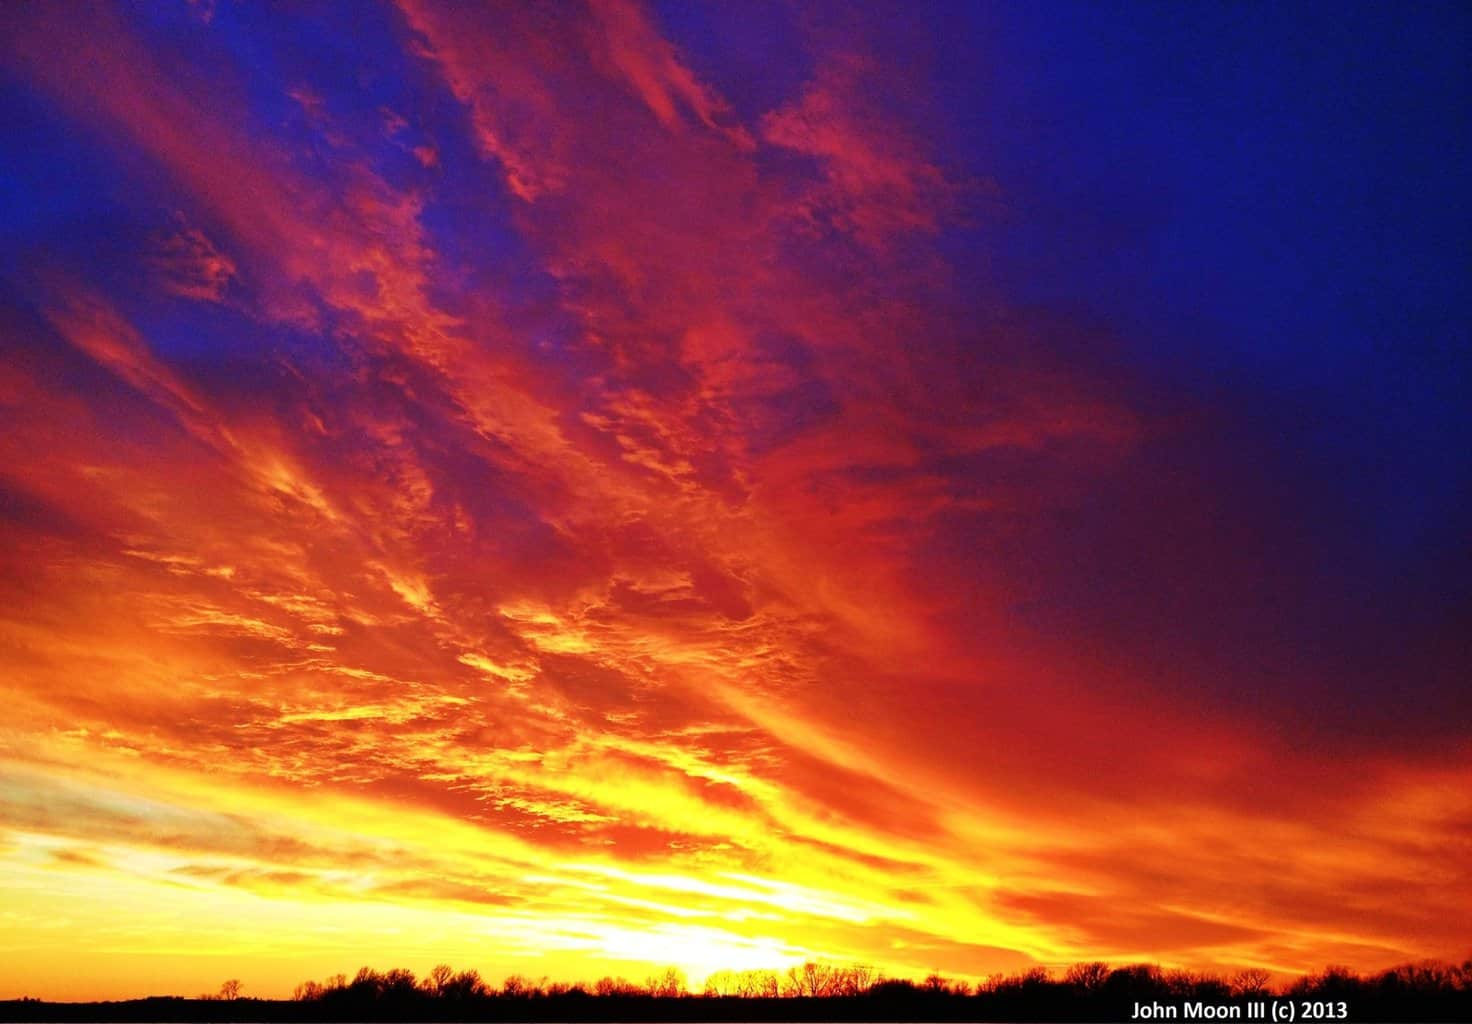 Hello everyone, I have not posted on here in quite some time. Today I have a sunset photo to share with you. This is a beautiful winter sunset taken in December of 2013. This was taken just outside of Clinton, Mo. As always, I hope you guys enjoy!